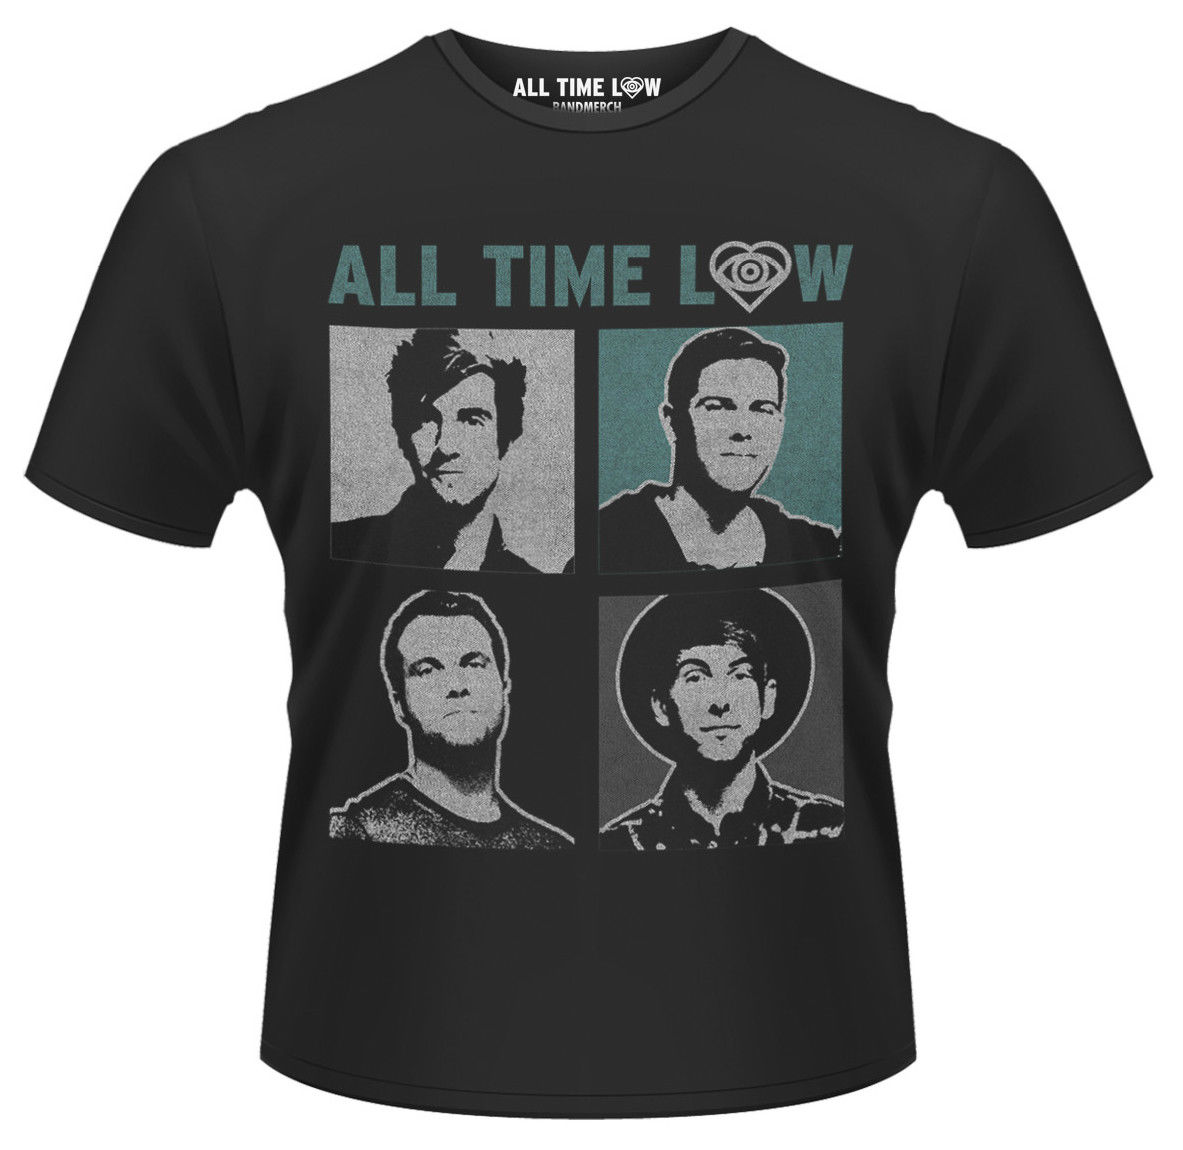 All Time Low RUNAWAYS T-SHIRT - NUOVO E ORIGINALE Cheap Sale 100 % Cotton T Shirts For Boys T Shirt O-Neck Men